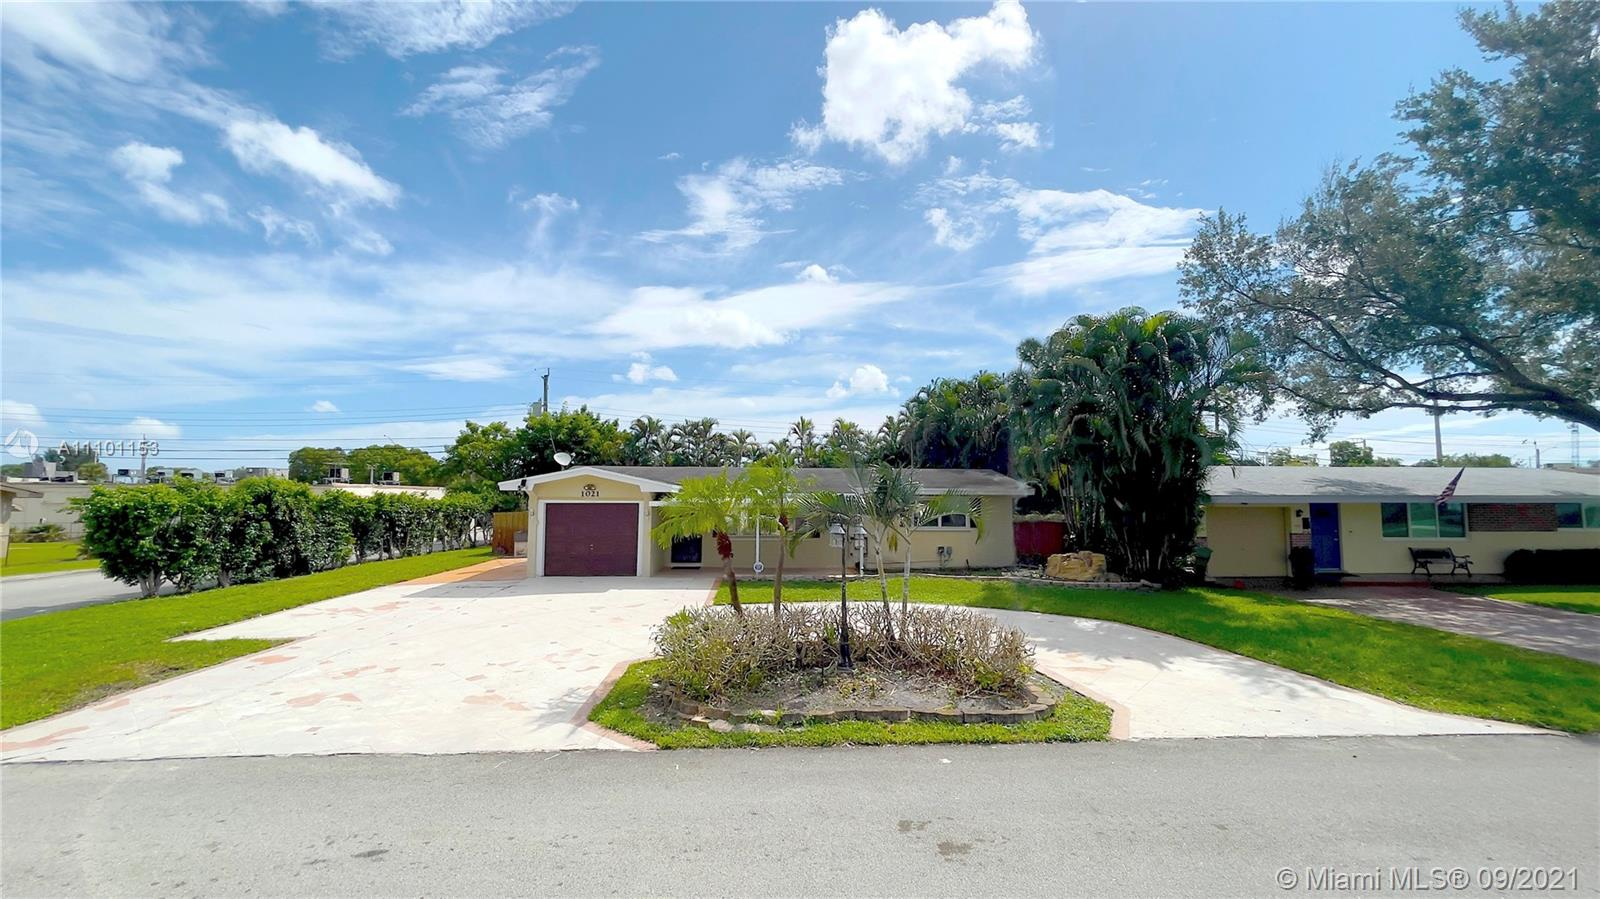 Boulevard Heights - 1021 NW 81st Ave, Pembroke Pines, FL 33024